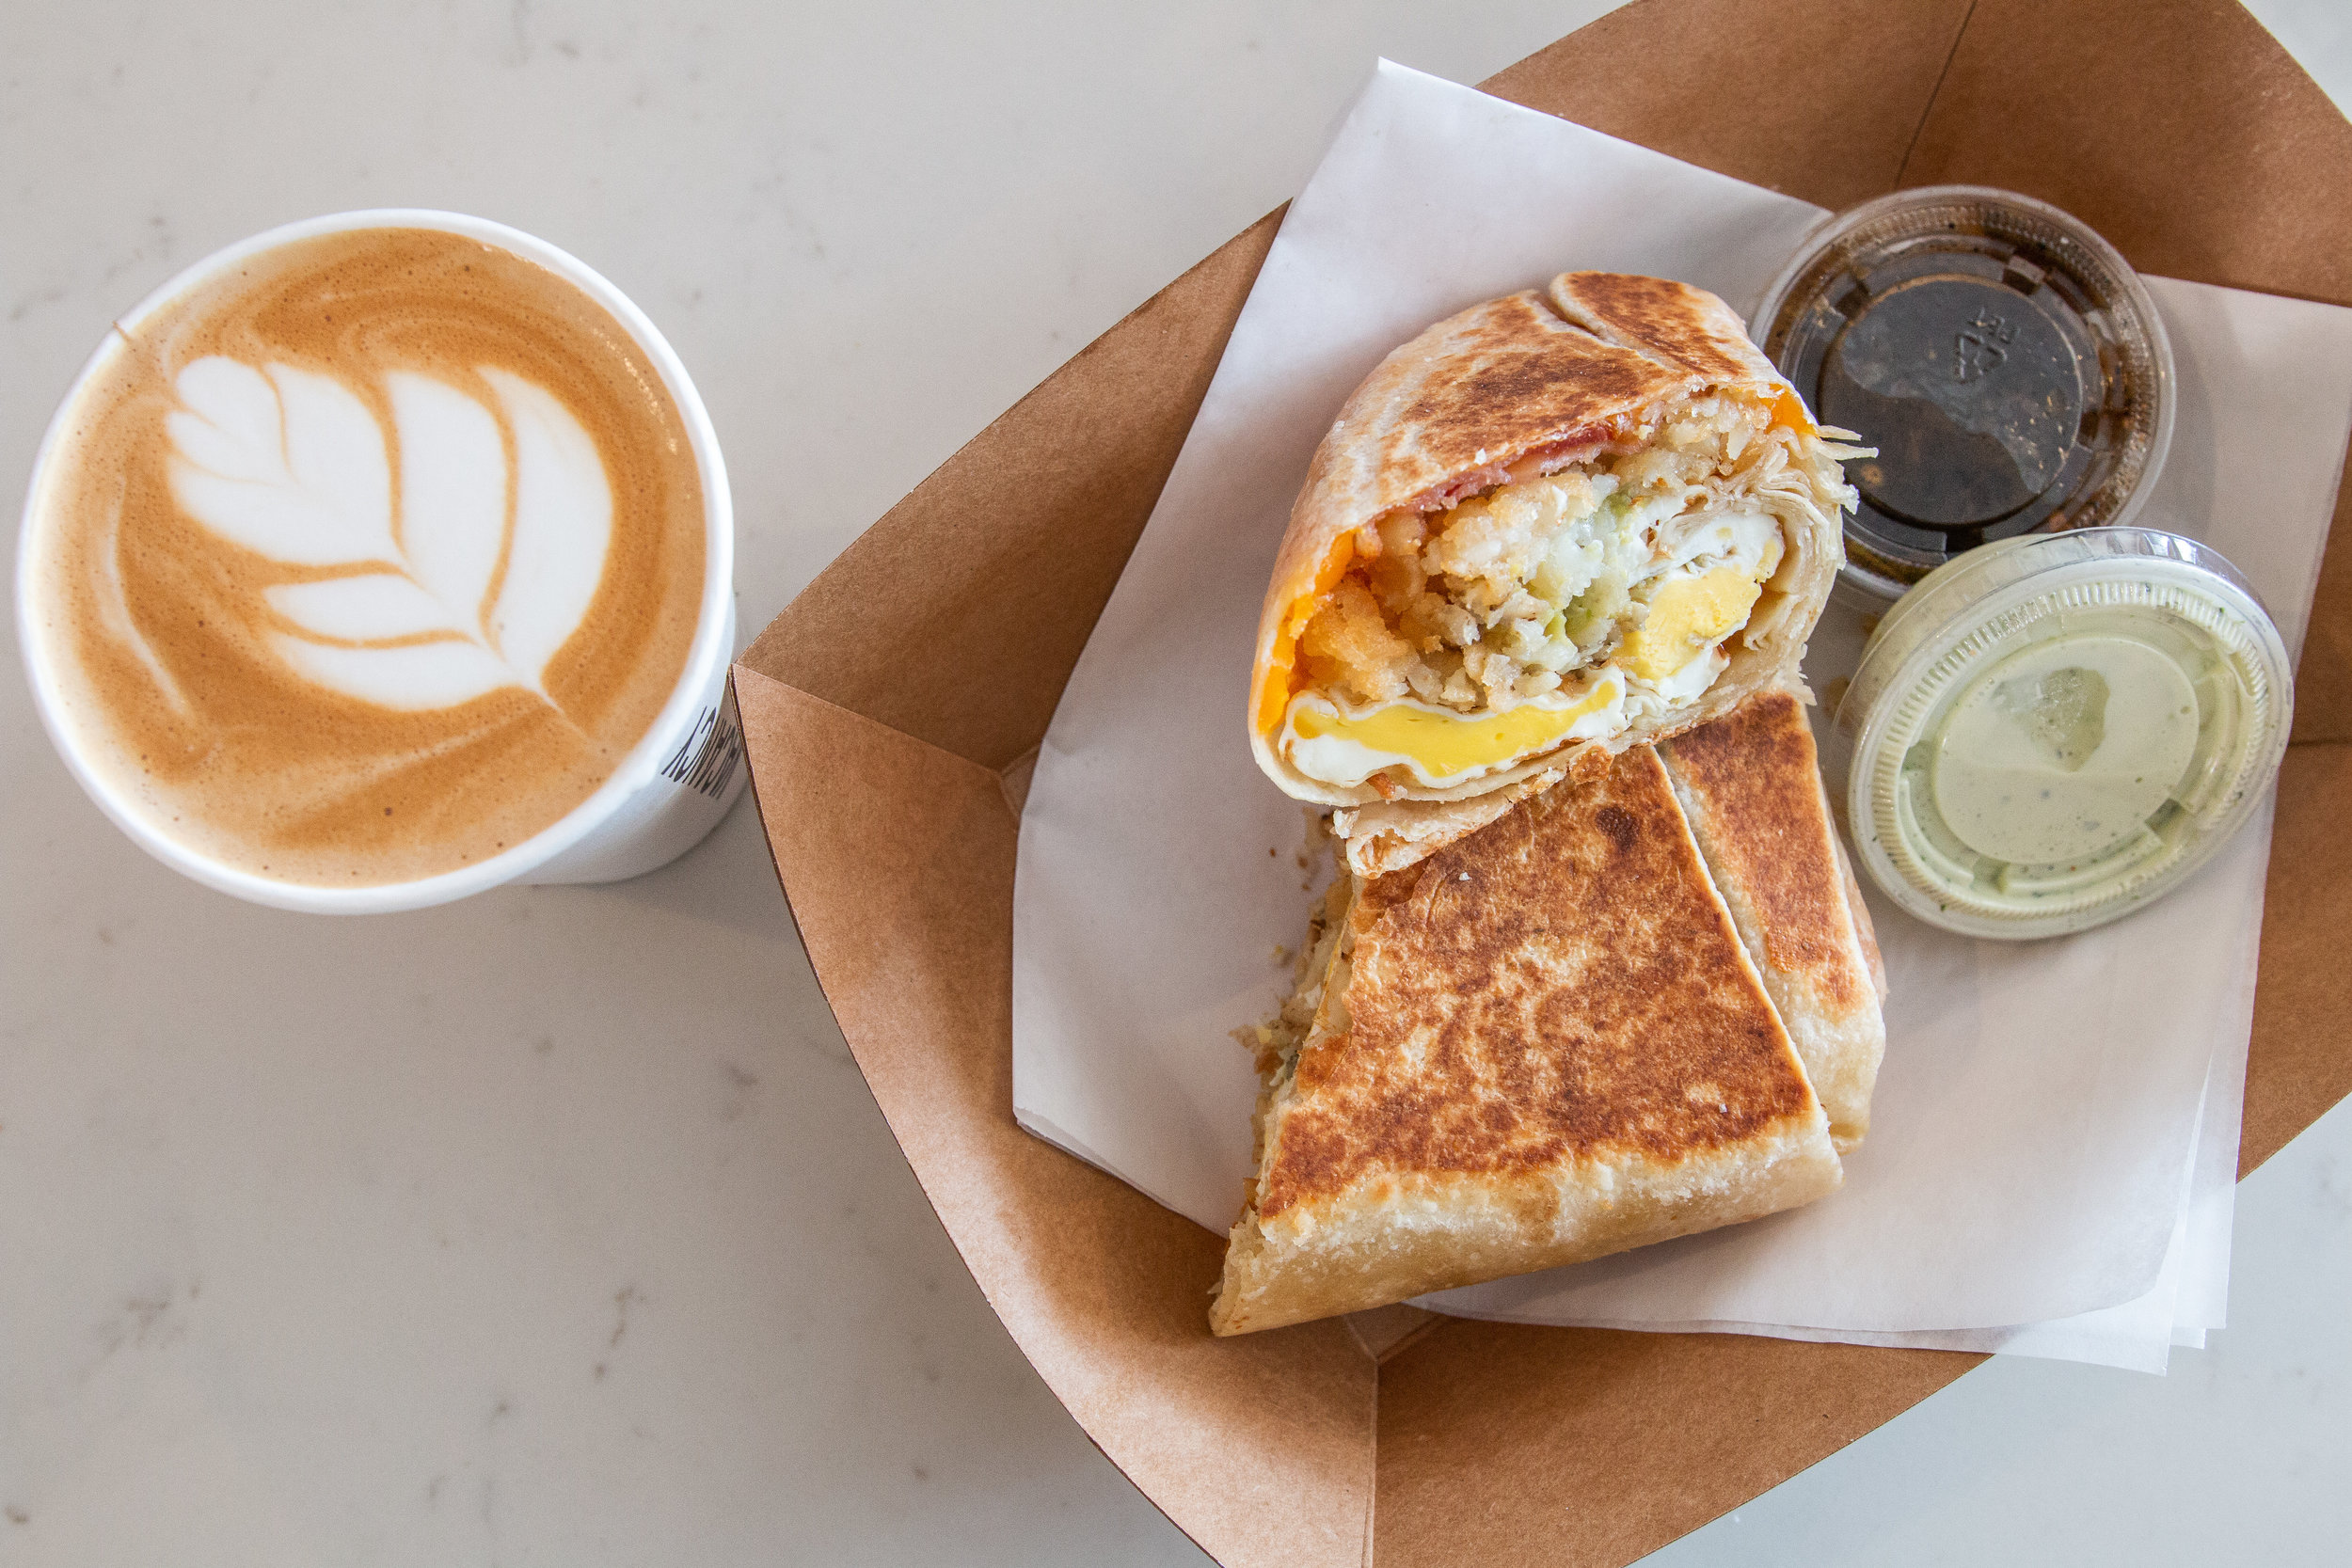 Vacancy Coffee Newport Beach delicious breakfast wrap